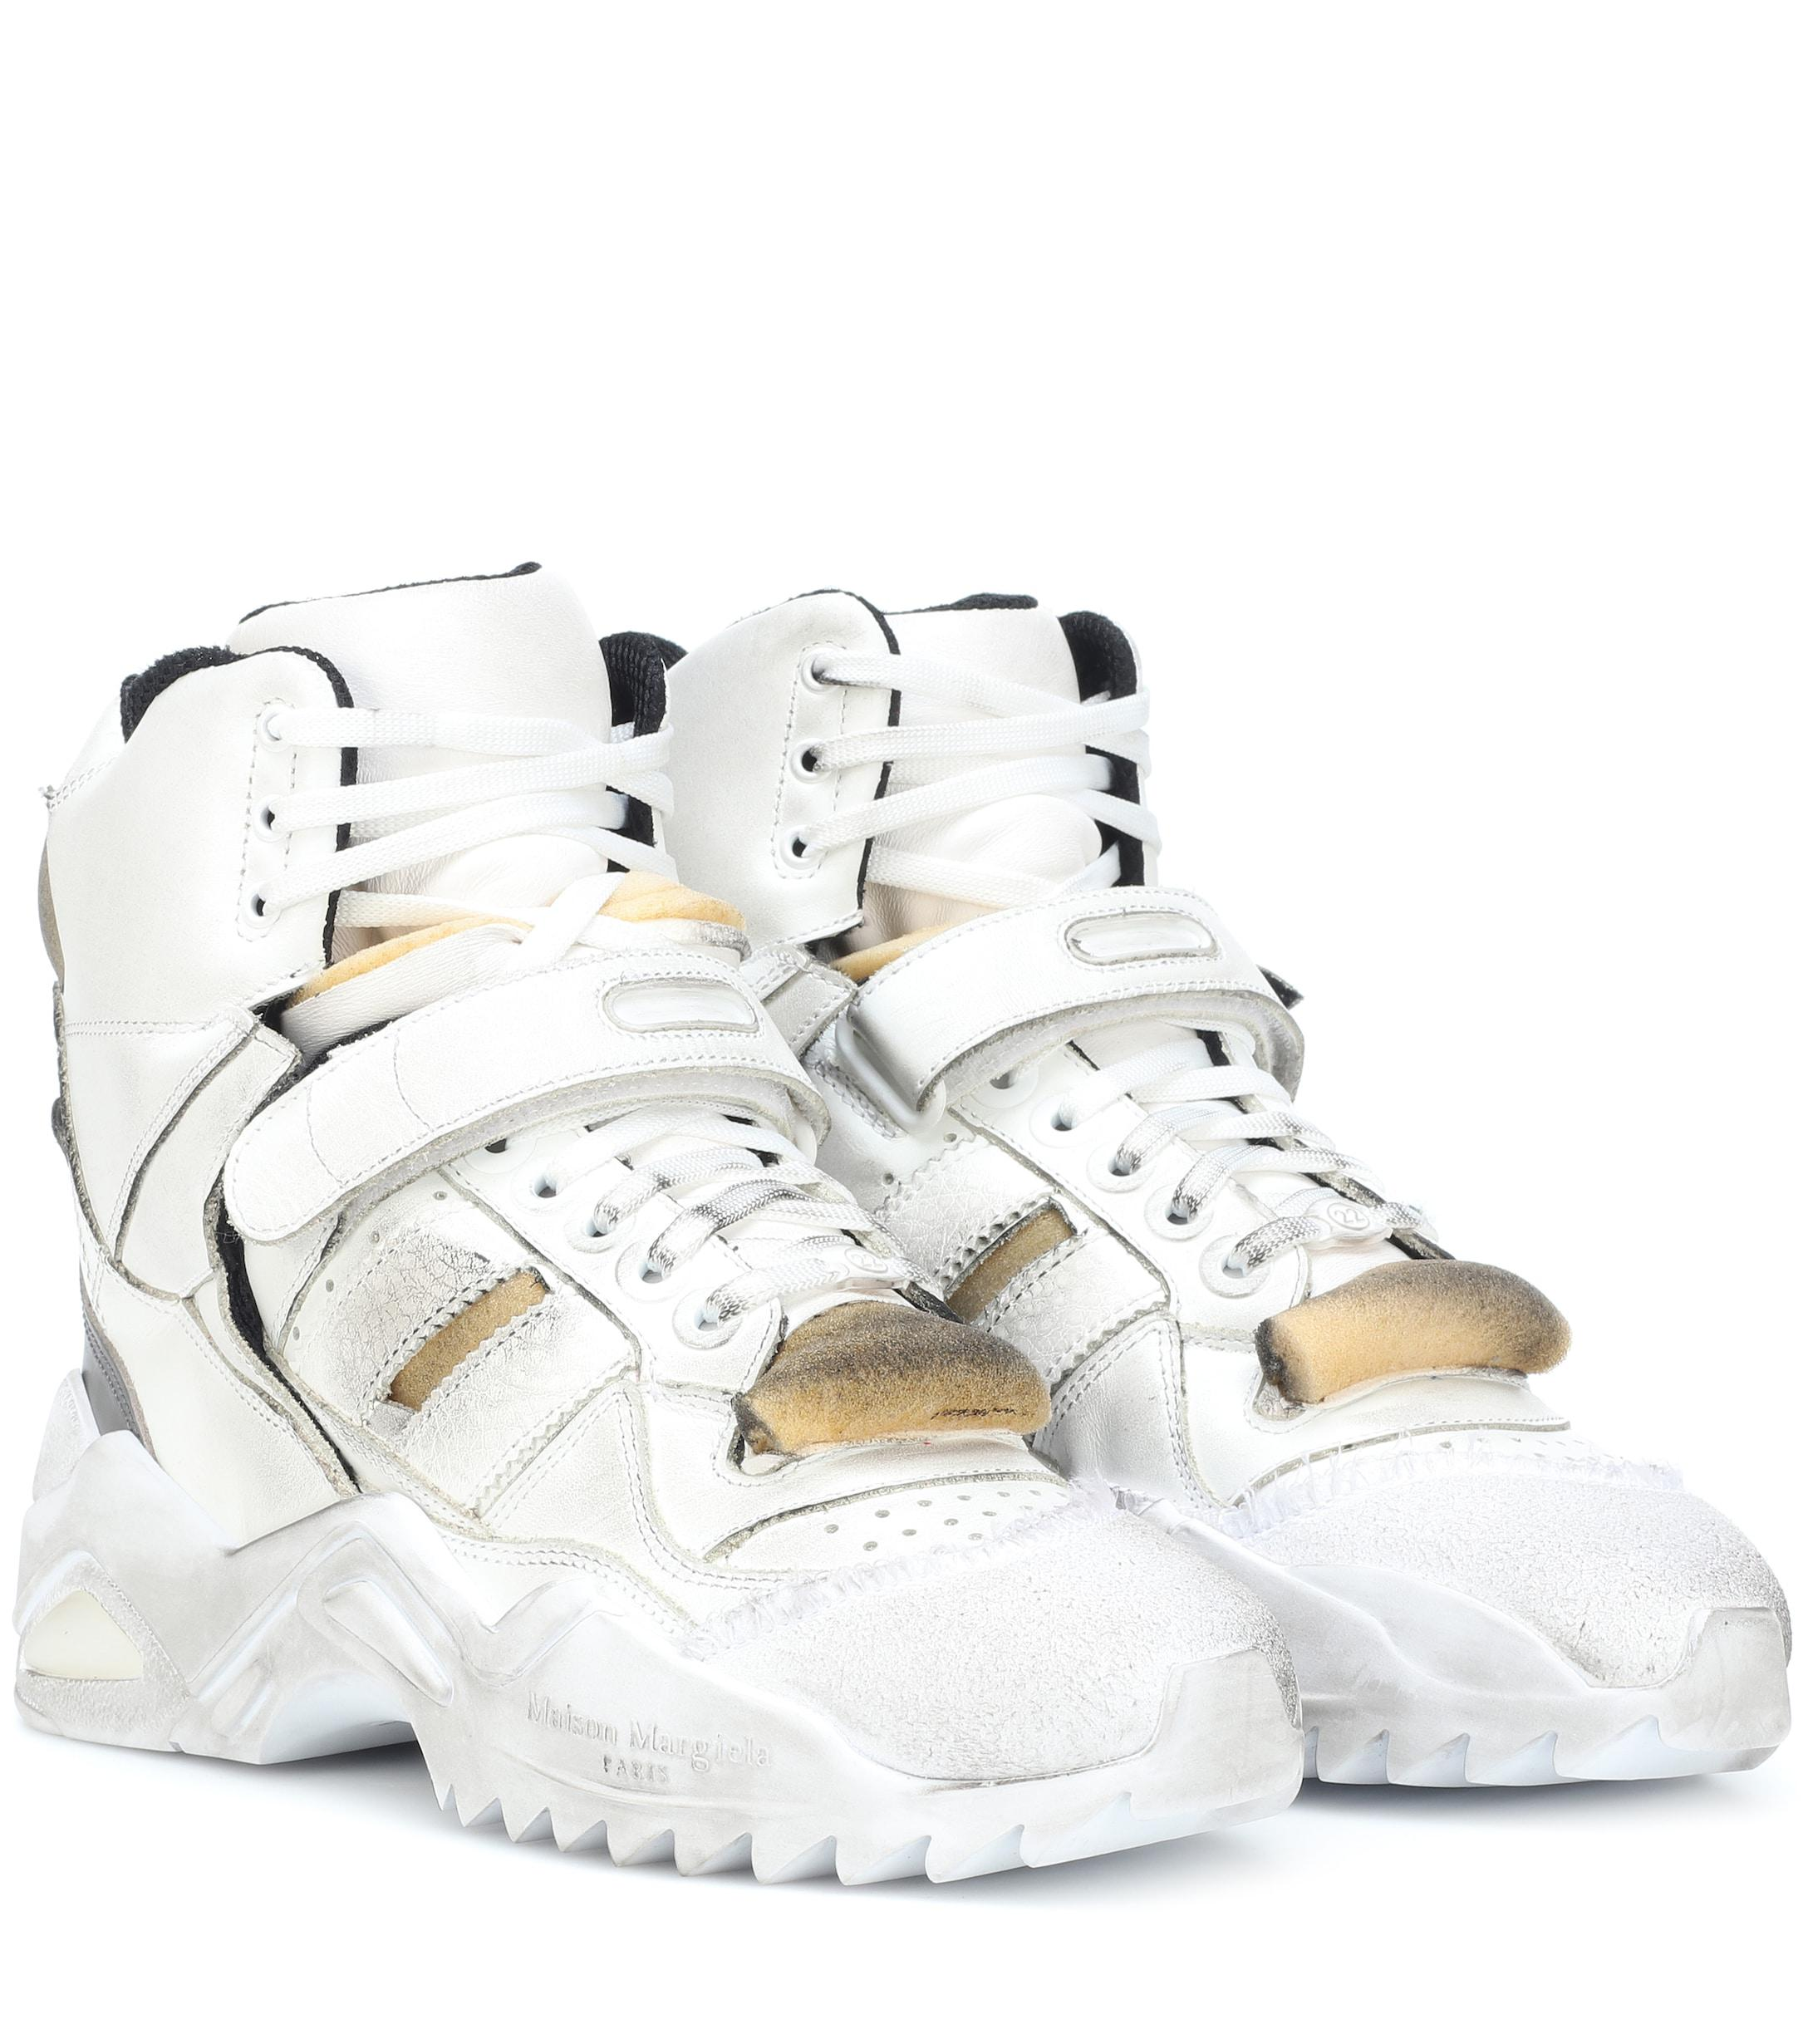 f75190c5d60d3 Maison Margiela Retro Fit Leather High-top Sneakers in White - Lyst